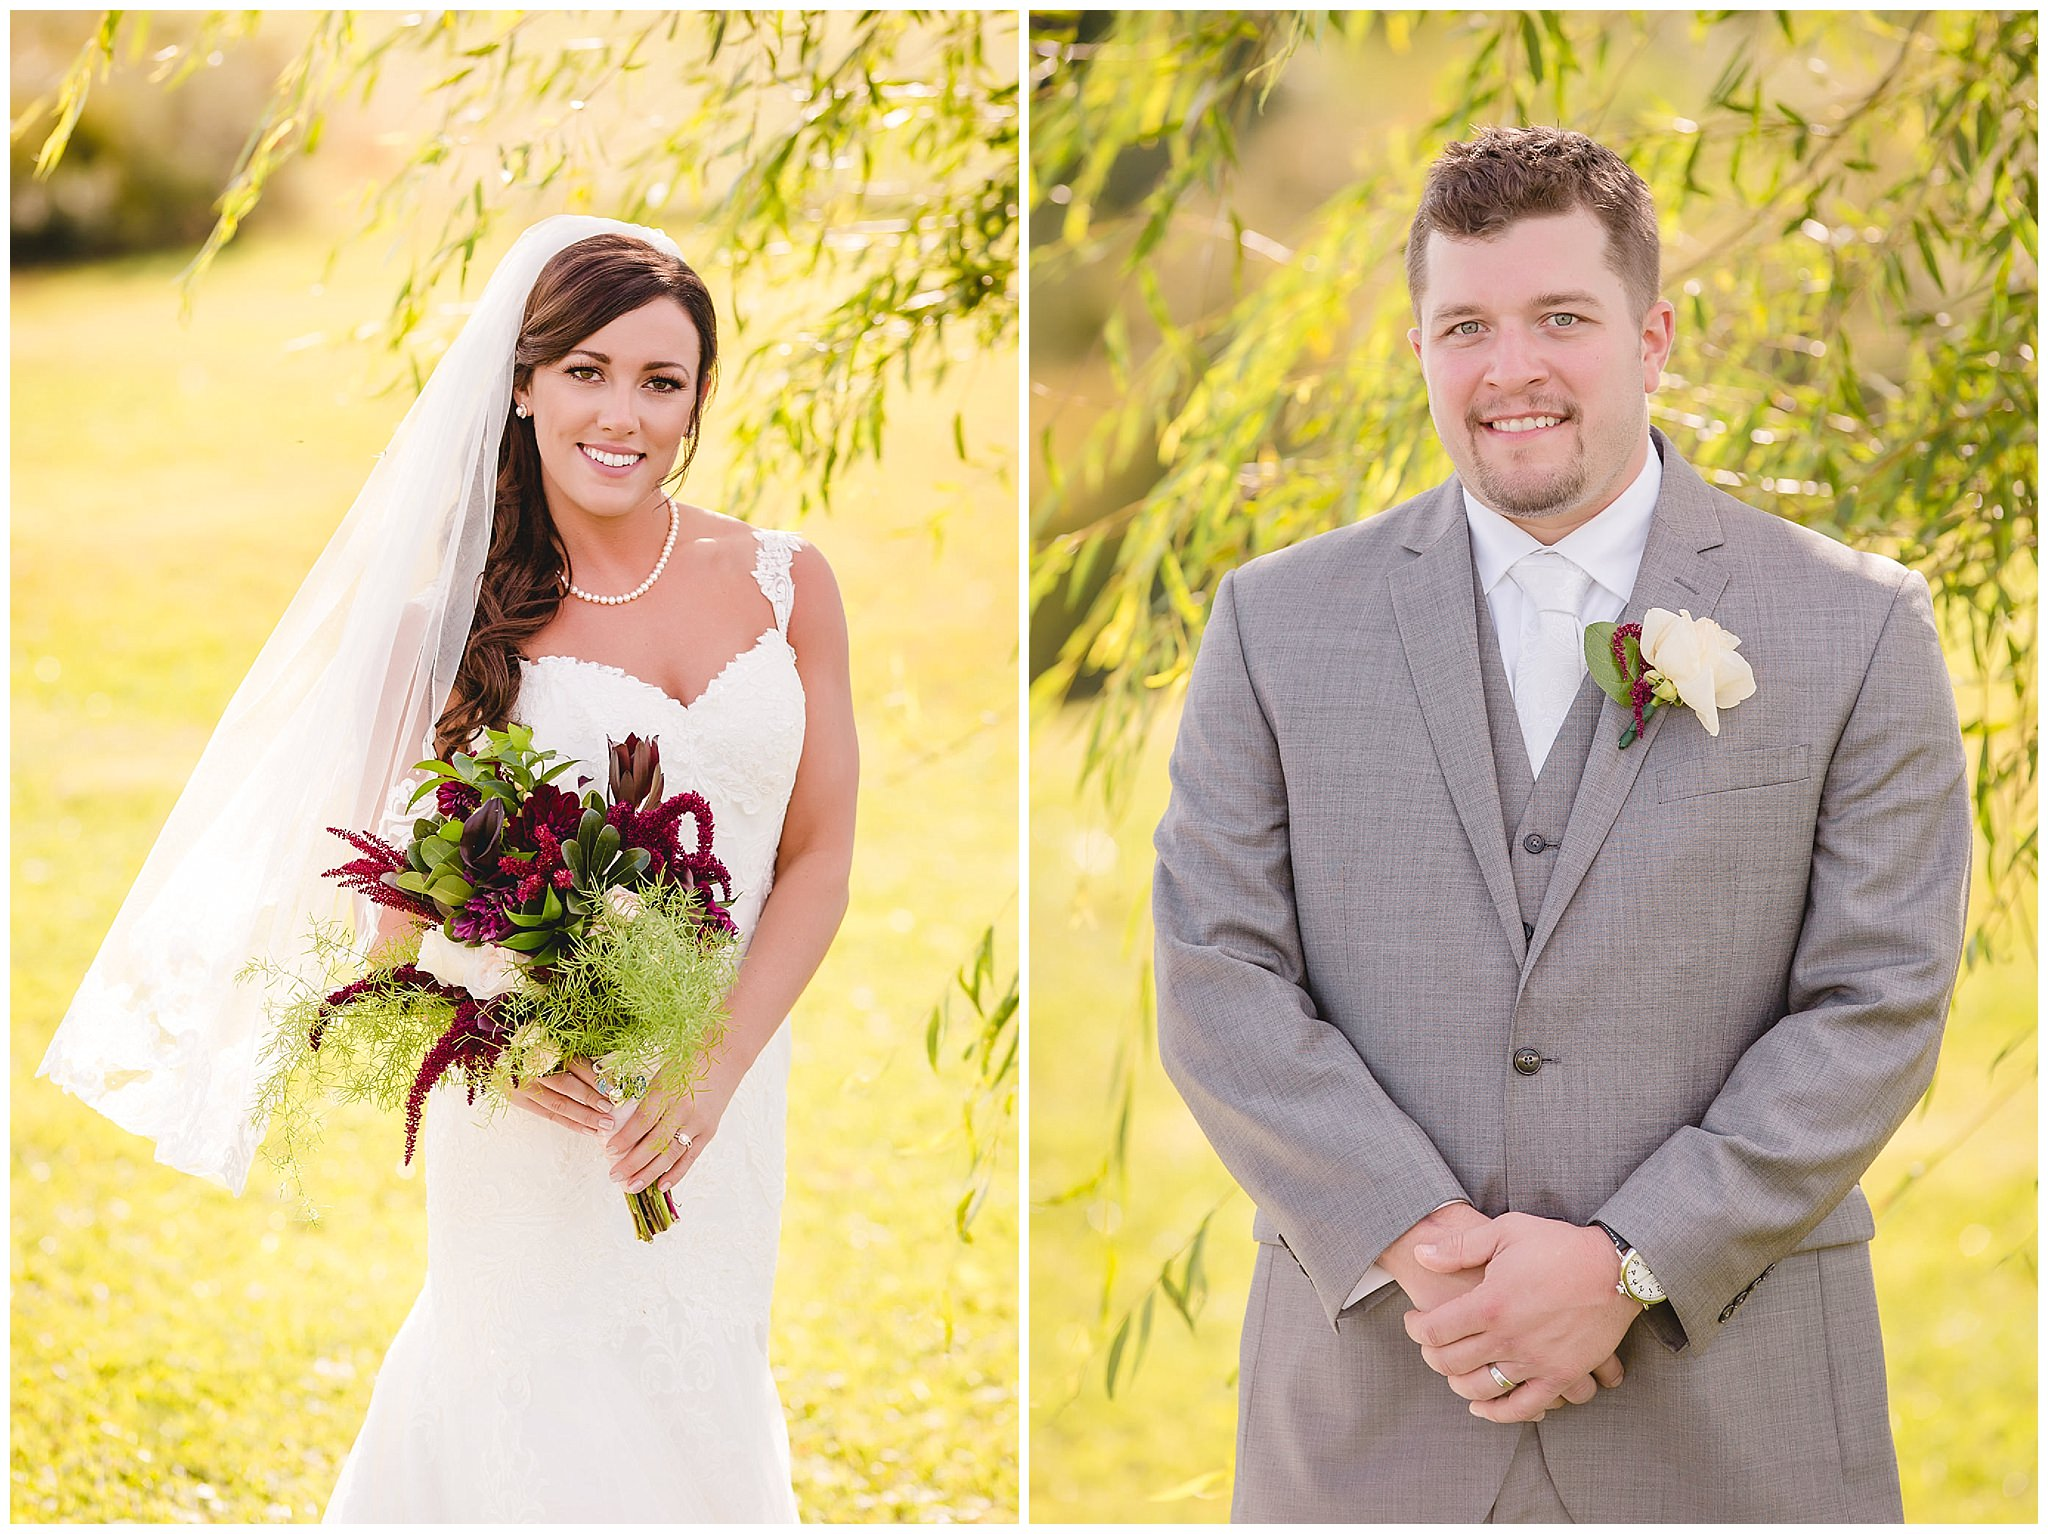 Bride and groom portraits at White Barn